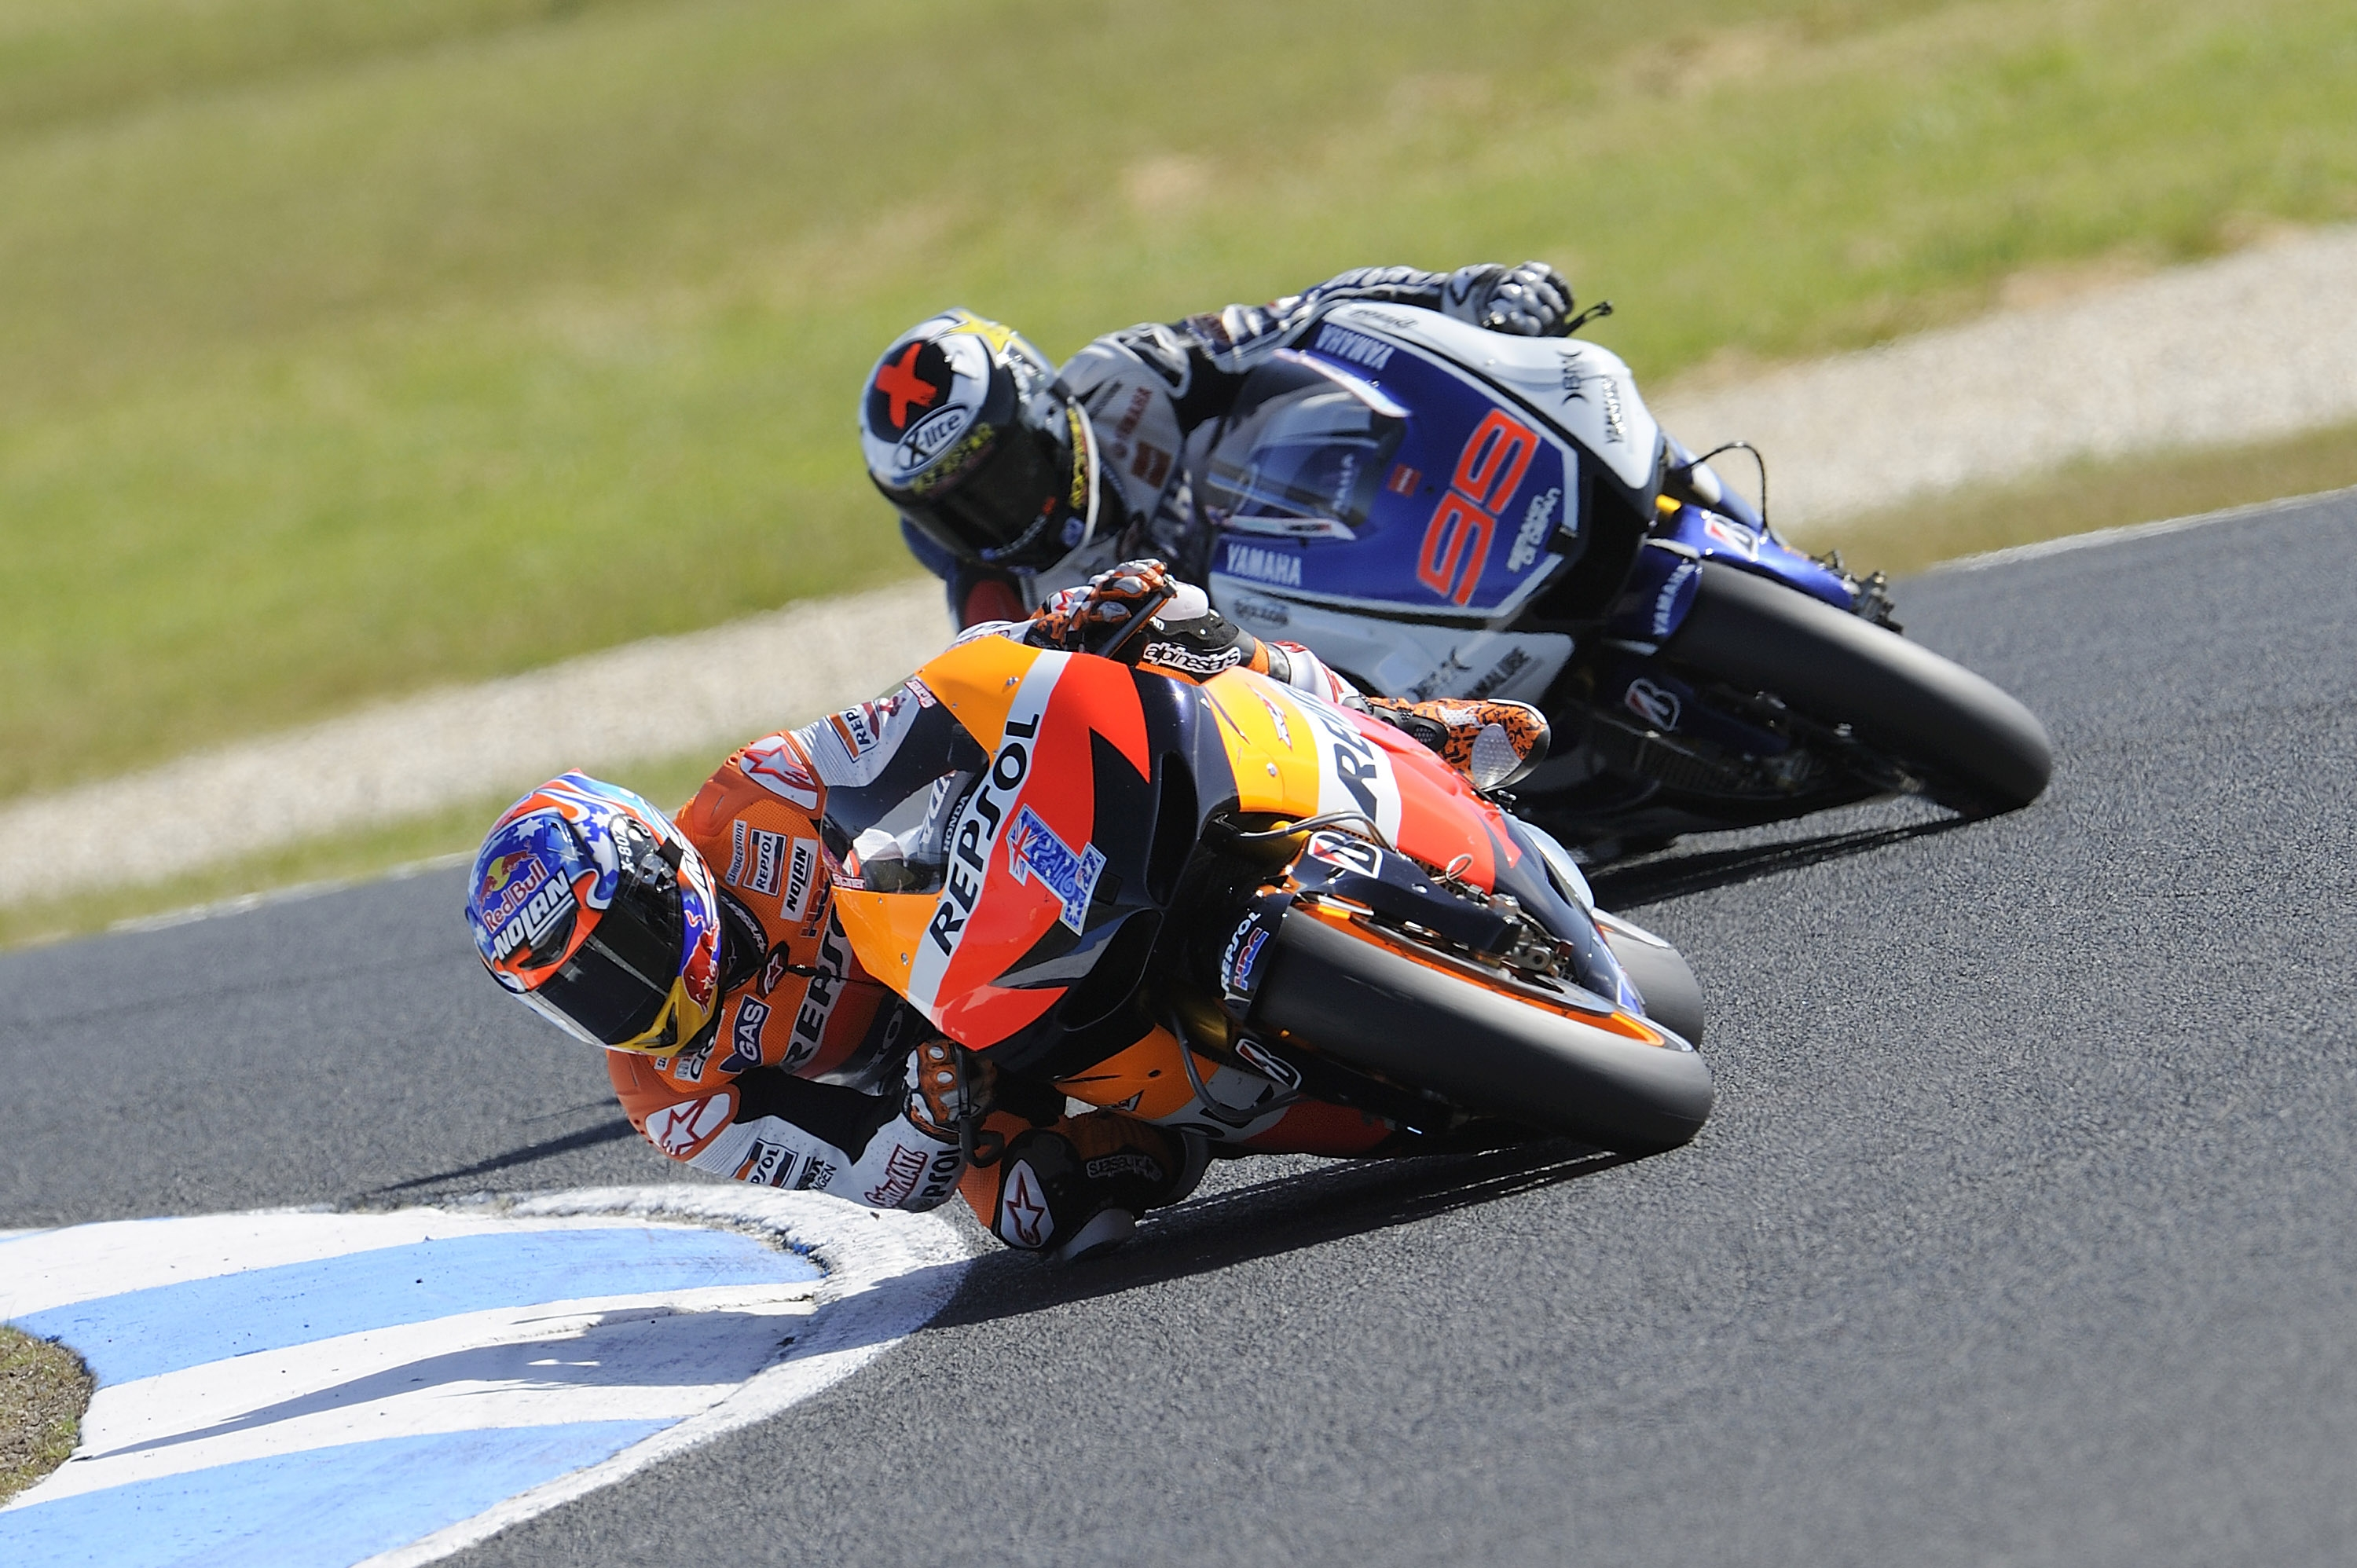 Stoner makes it six in a row at Phillip Island